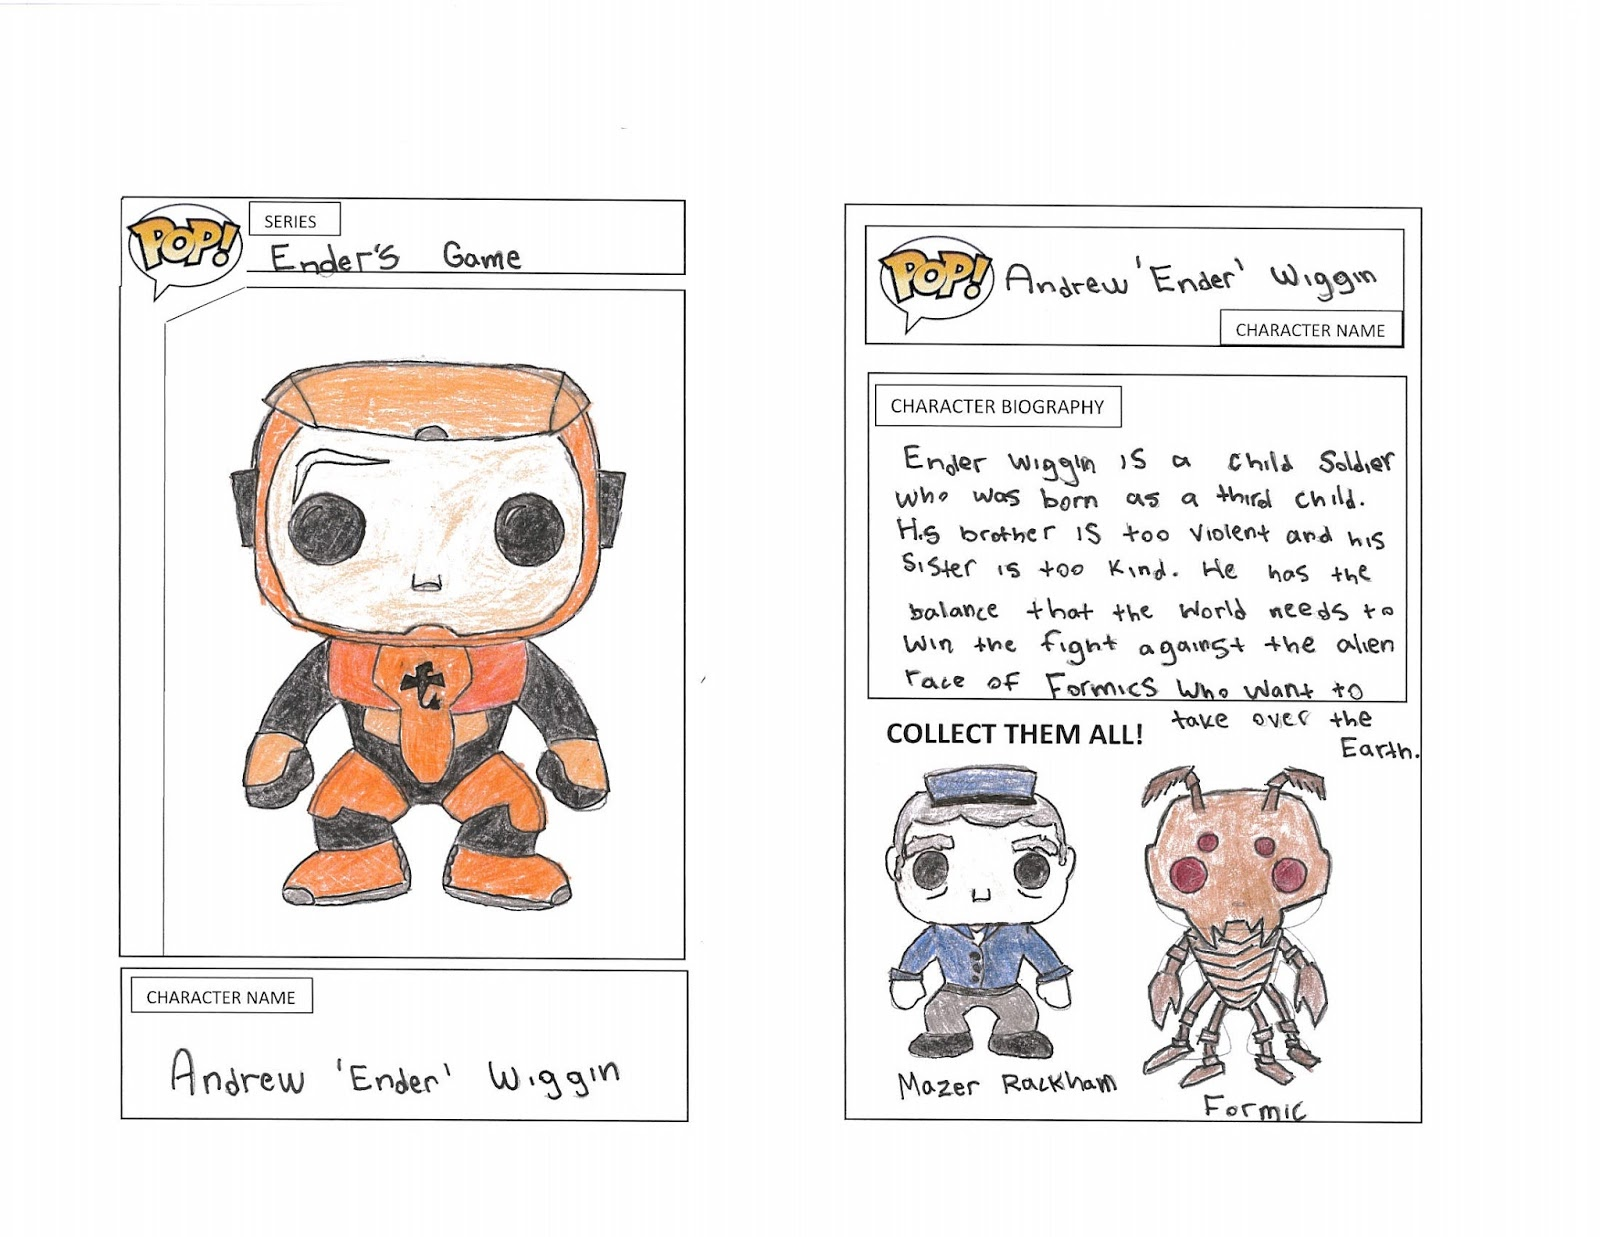 Quinn rollins play like a pirate funko pop as biography quinn rollins play like a pirate pronofoot35fo Choice Image